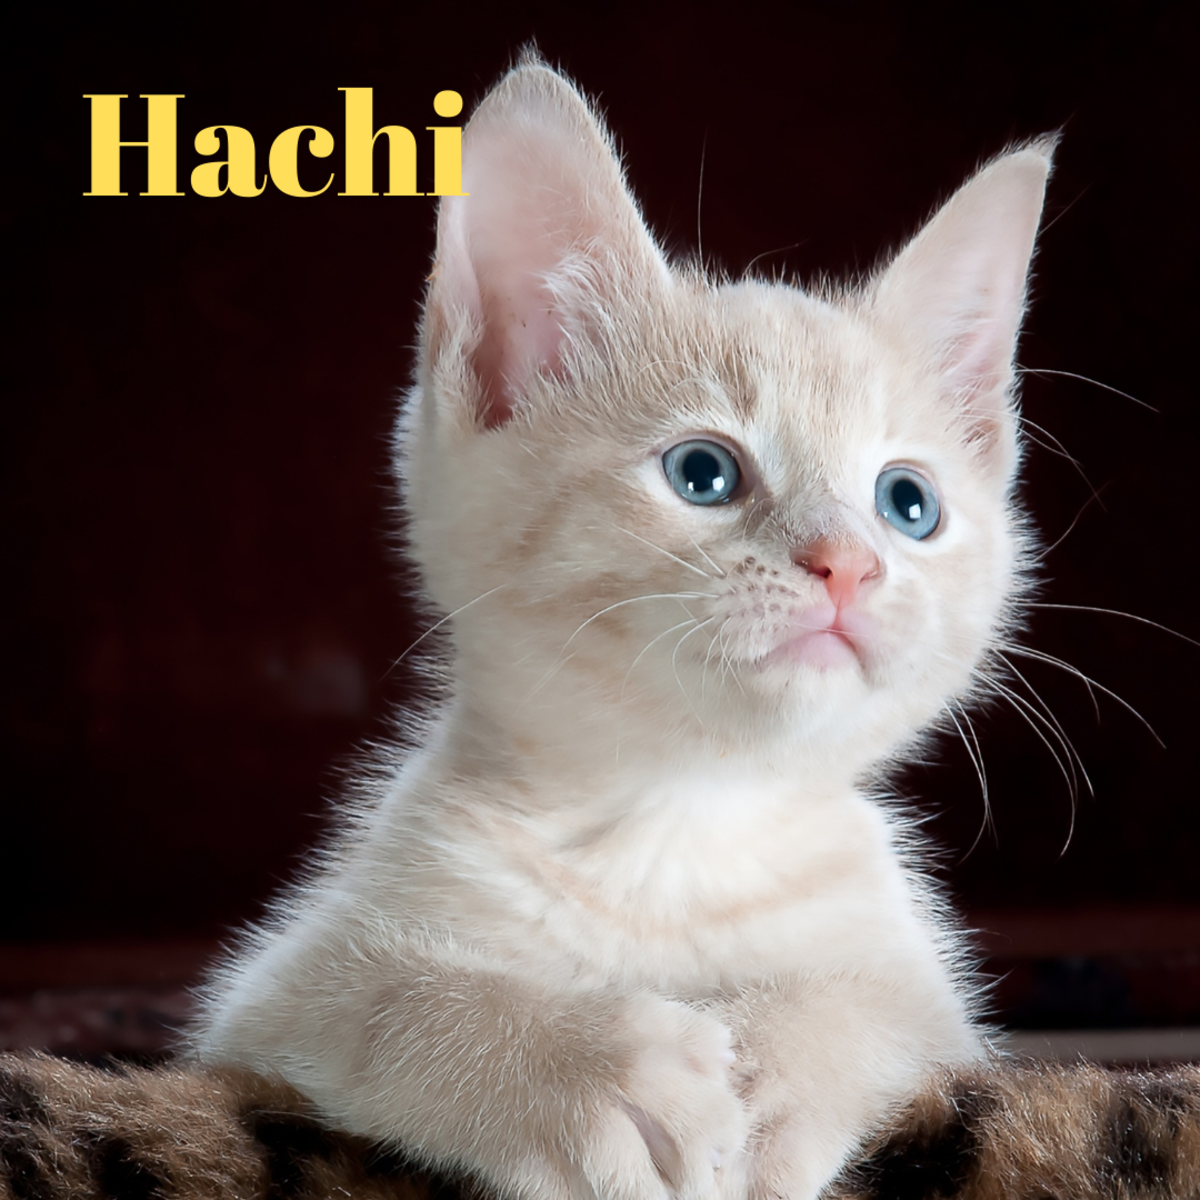 A kitten named Hachi